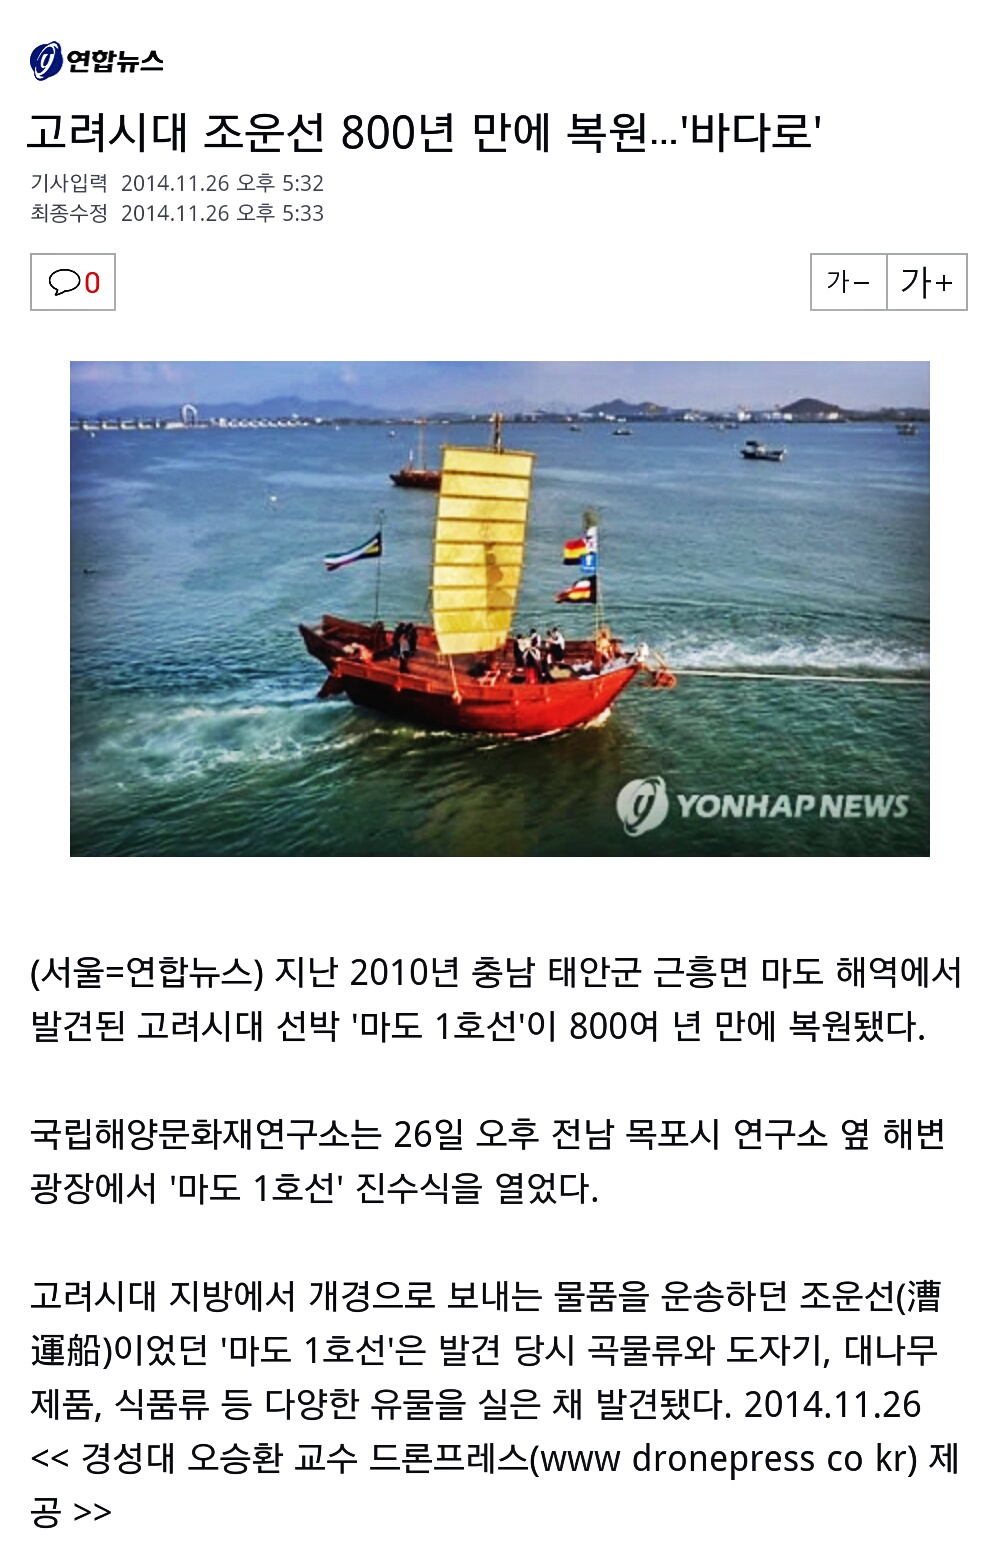 Screenshot_2014-11-26-20-58-27_1 - 복사본